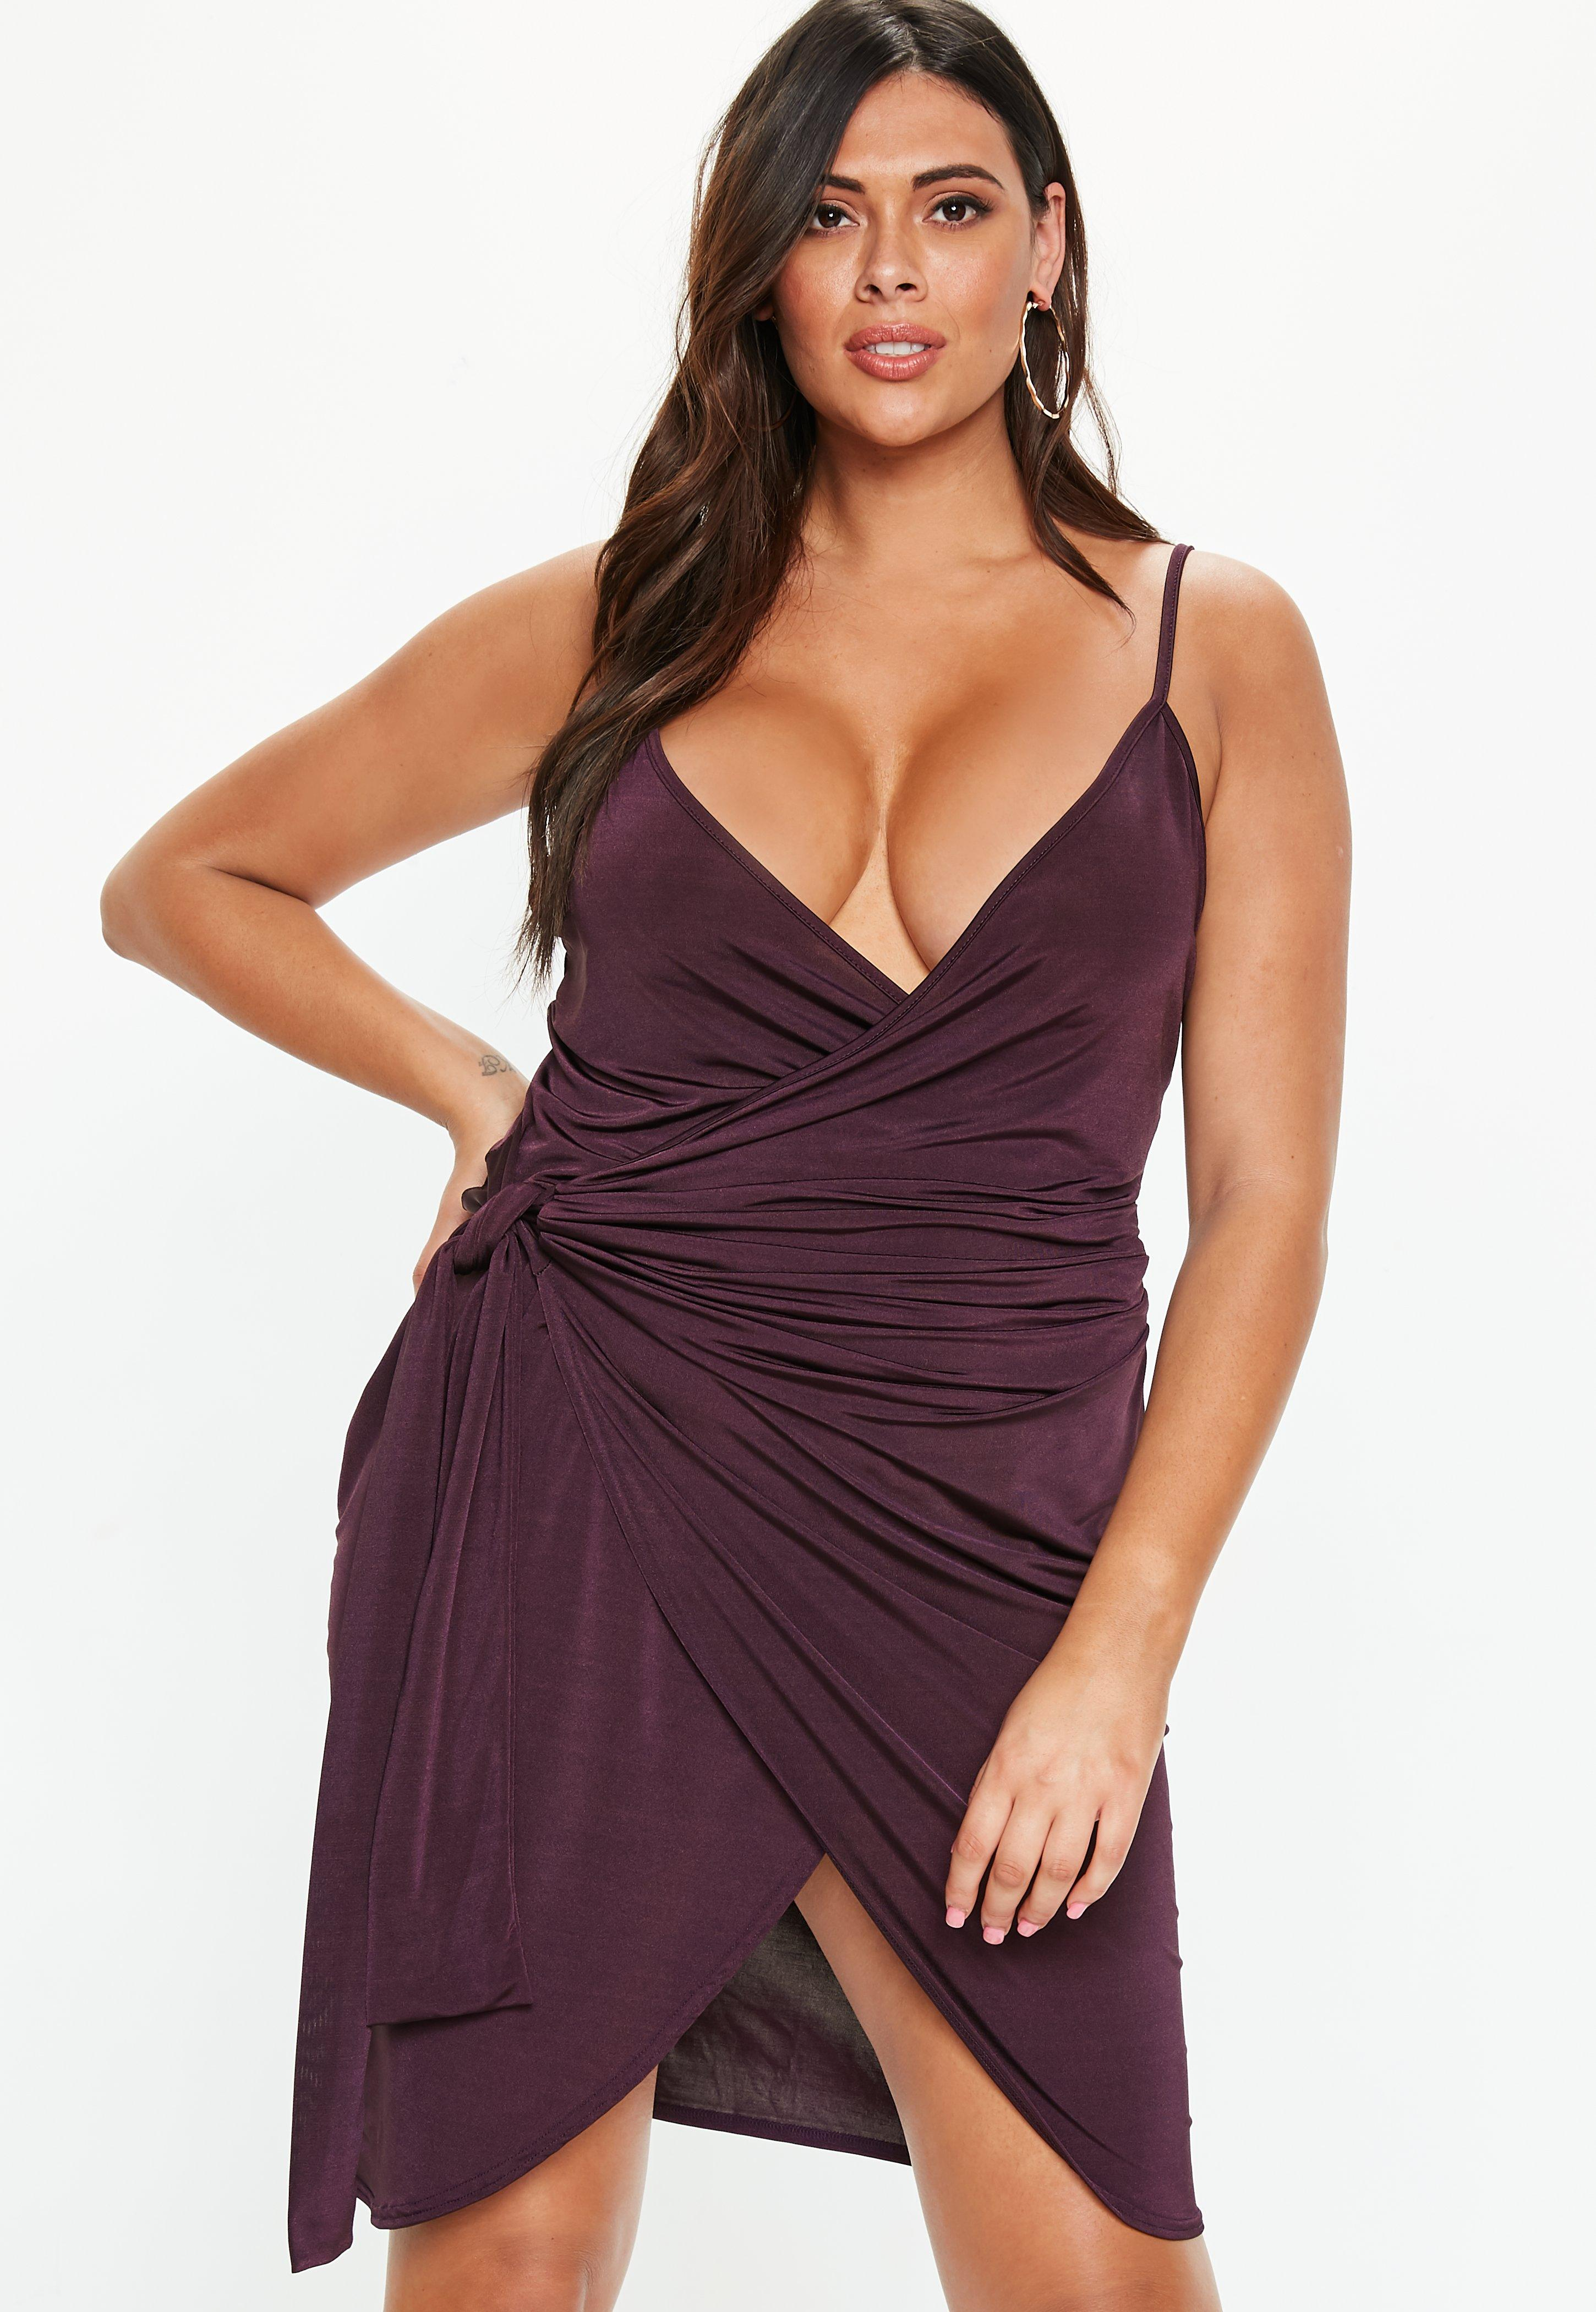 Plus Size Slip Dress